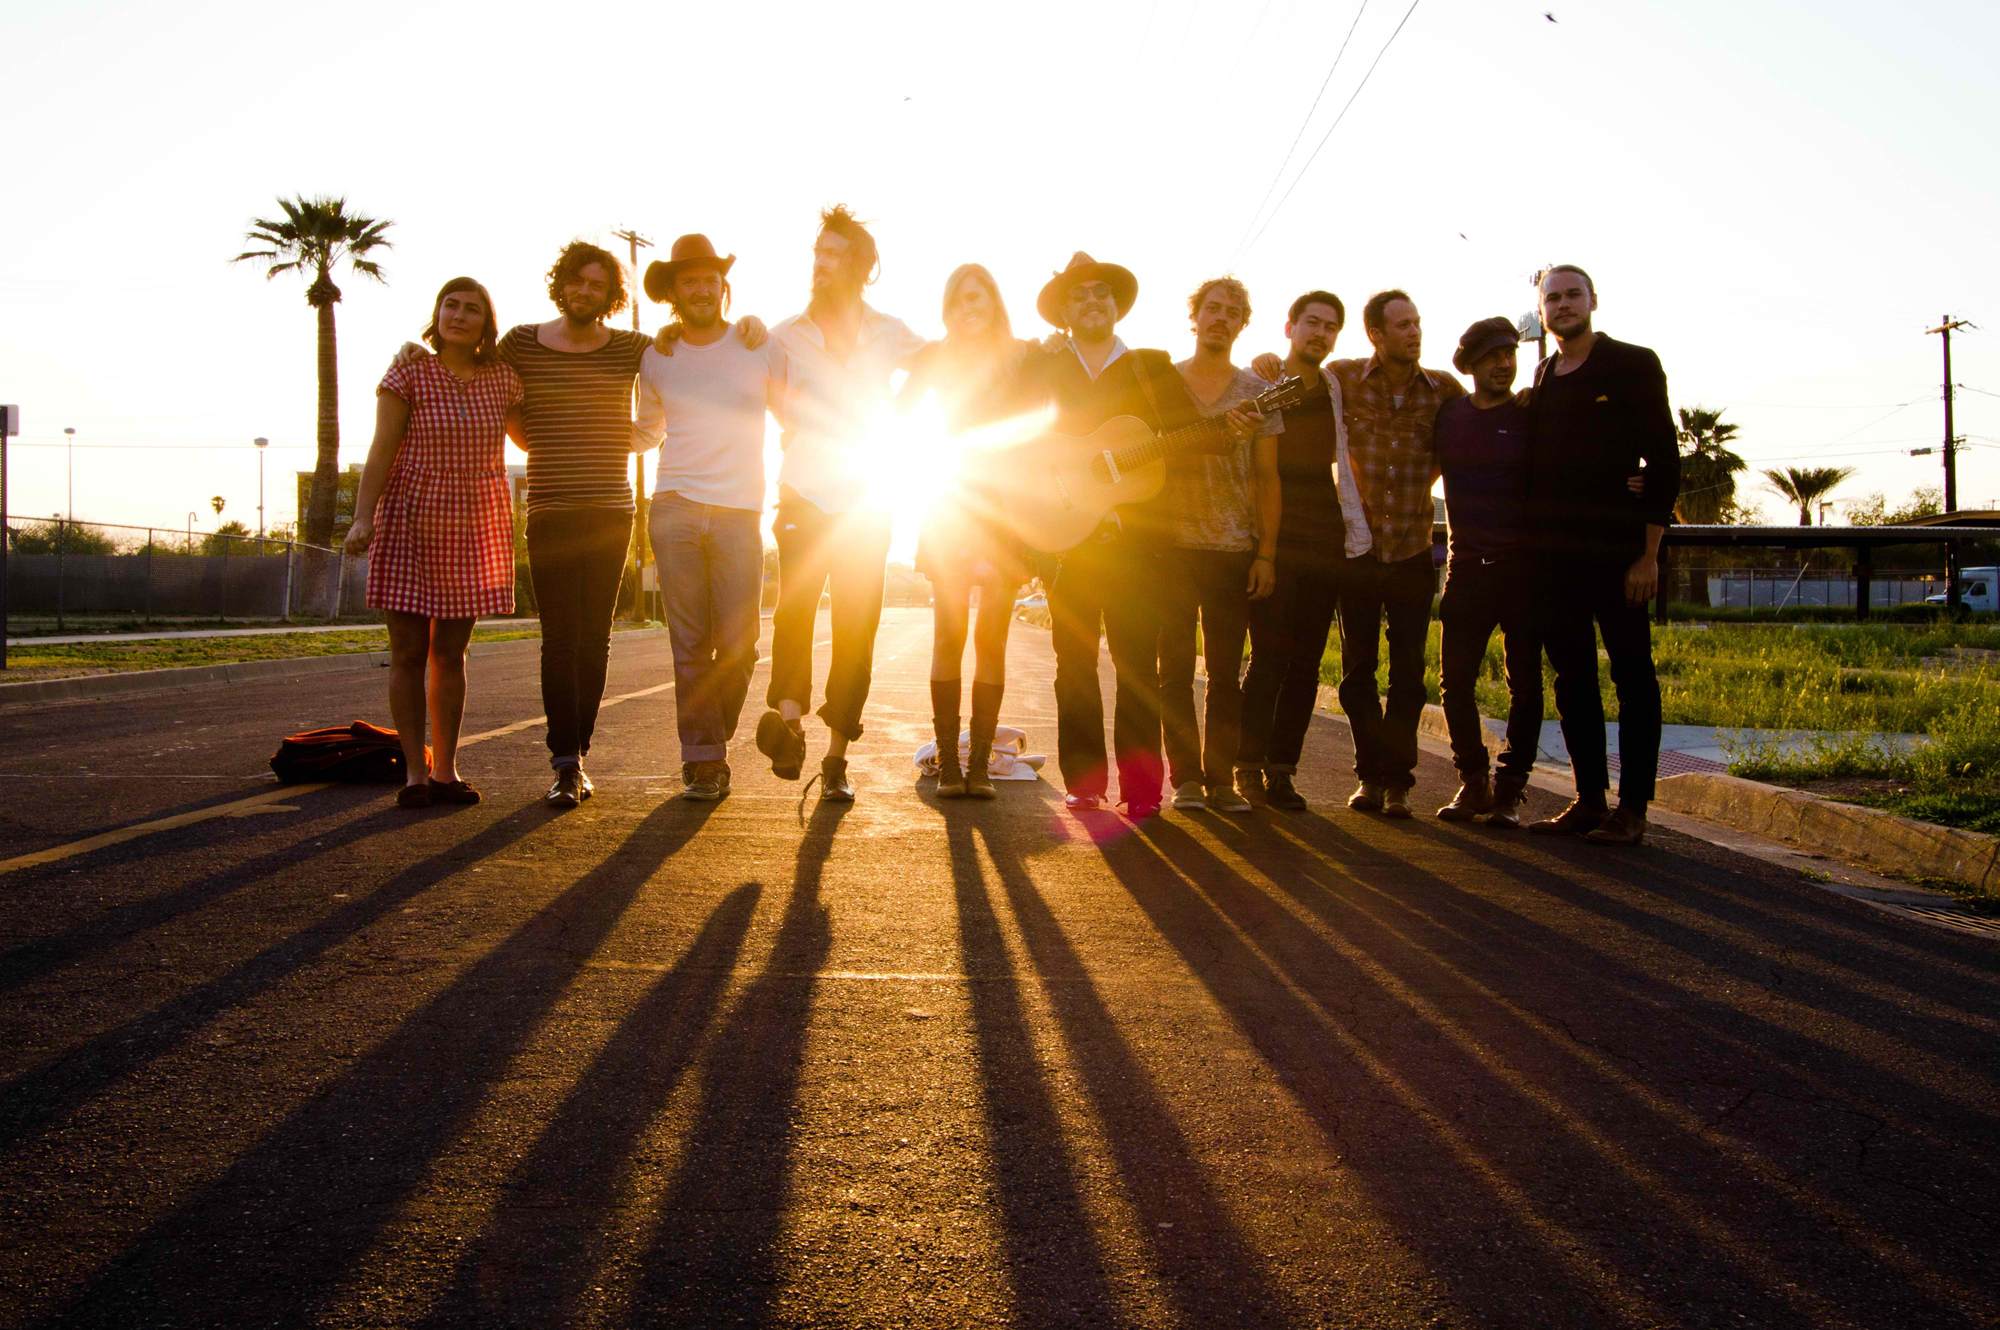 Edward Sharpe and the Magnetic Zeros part ways with vocalist Jade Castrinos